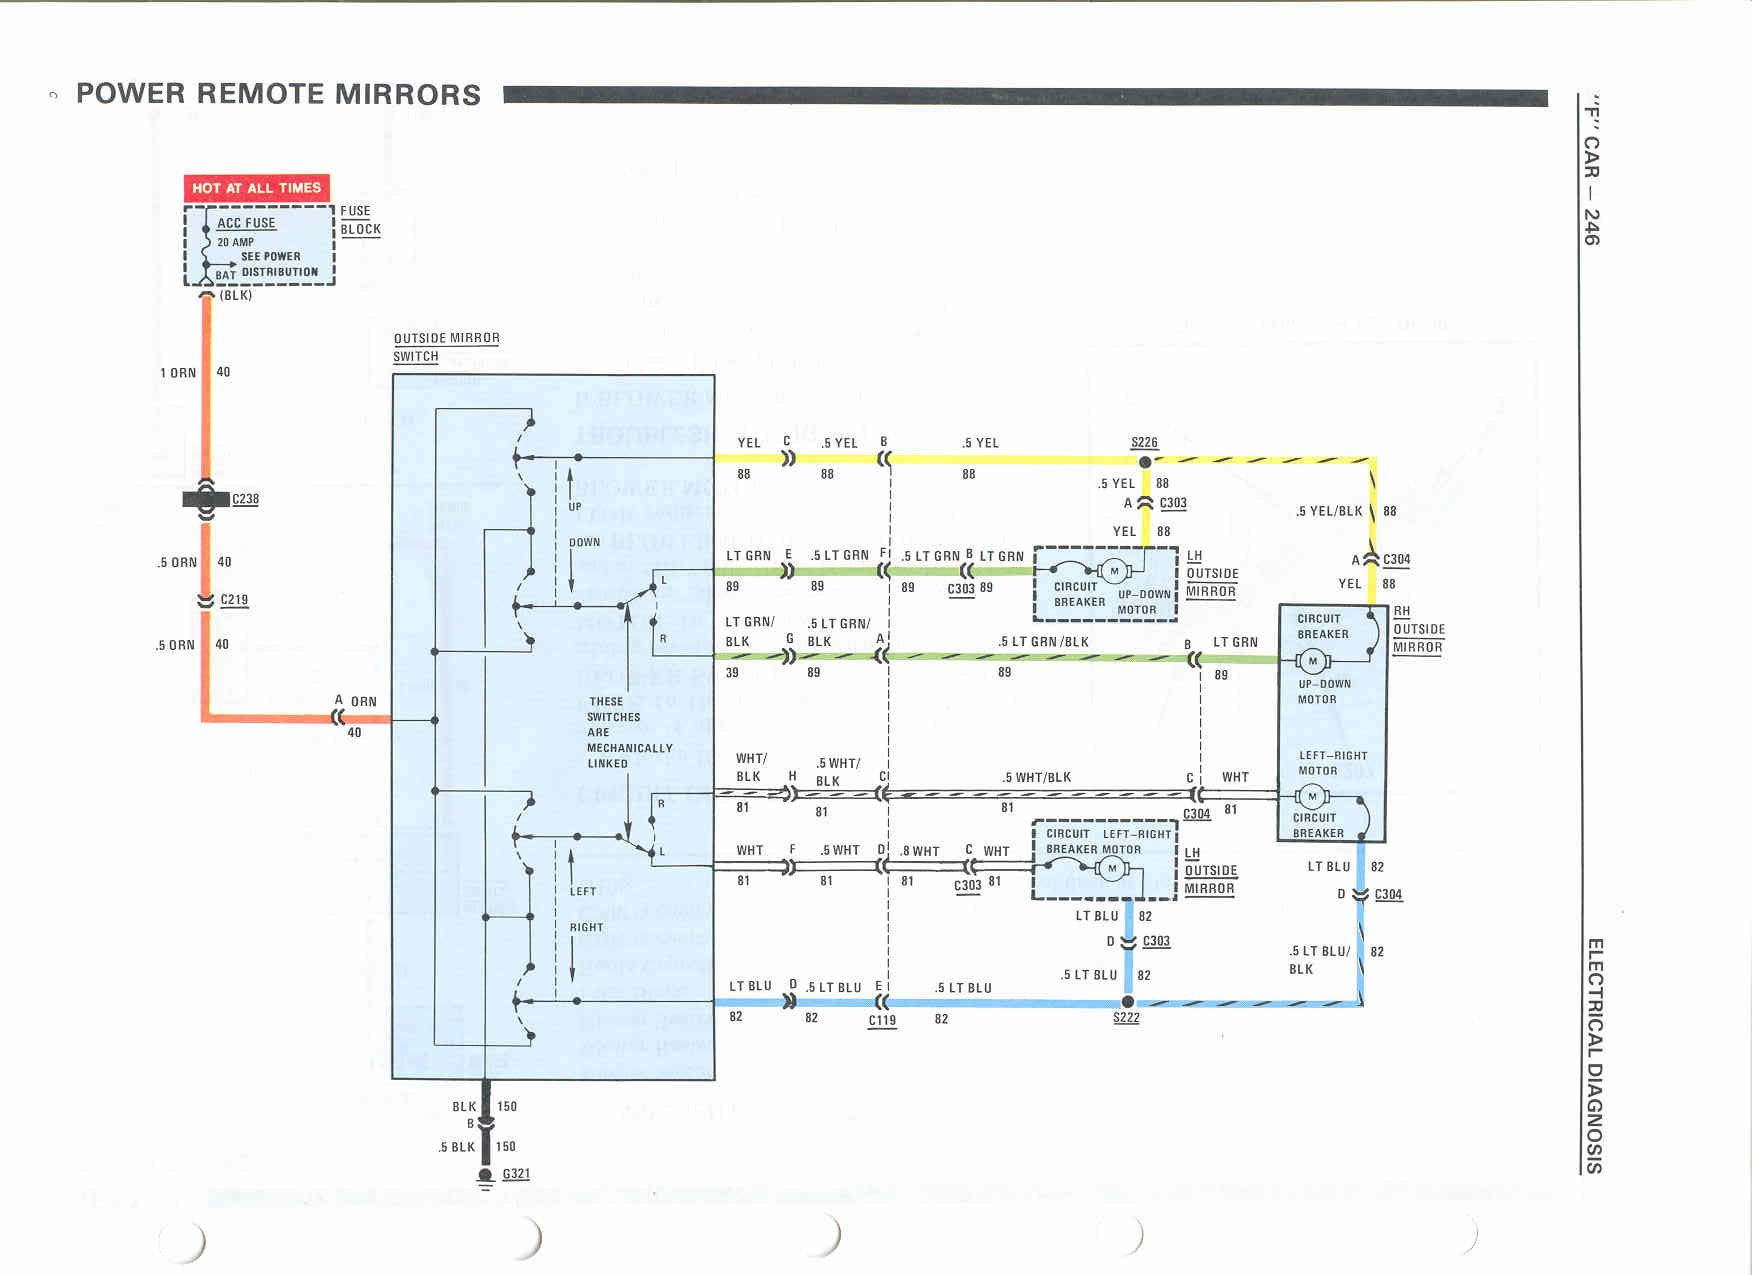 1988 chevy camaro wiring diagram camaro berlinetta wiring diagram shop manual here is a sample wiring diagram click on this image